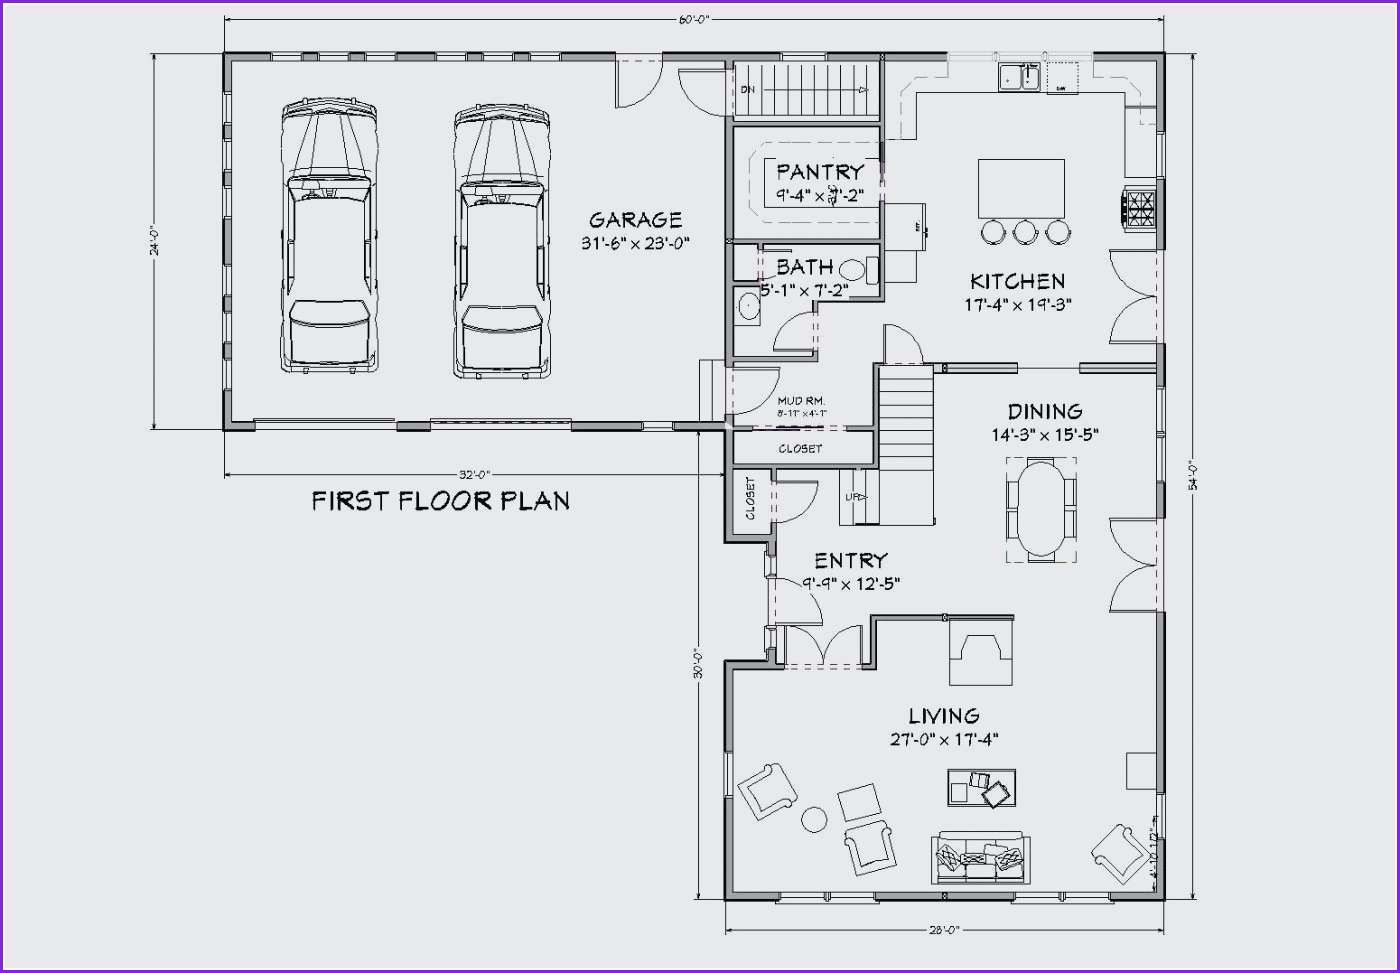 Awesome 2500 Sq Ft Ranch House Plans Awesome 2500 Sq Ft Ranch House Plans 2500 Sq Ft Ranch House Plans  Awesome 2500 Sq Ft Ranch House Plans  51 Alternative Single Story...